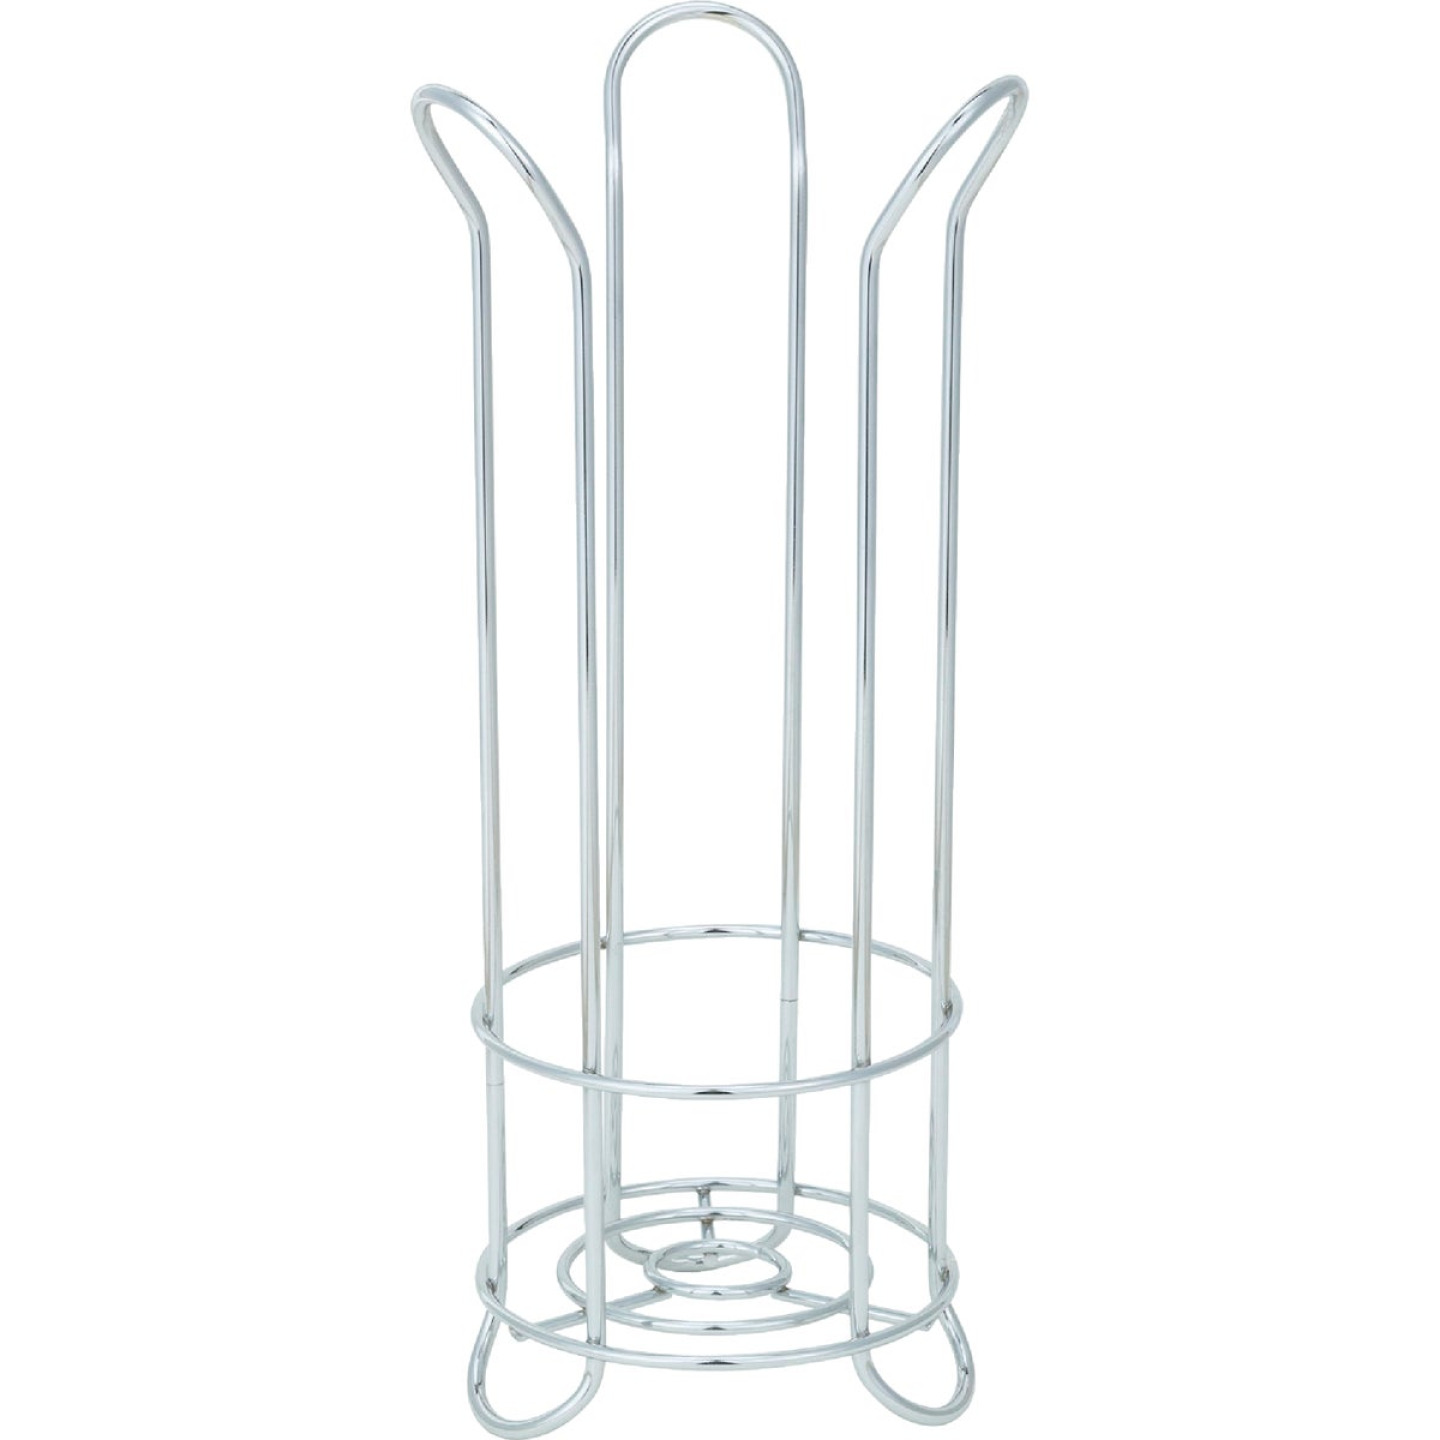 InterDesign Forma Chrome Tulip Freestanding Toilet Paper Holder Image 4